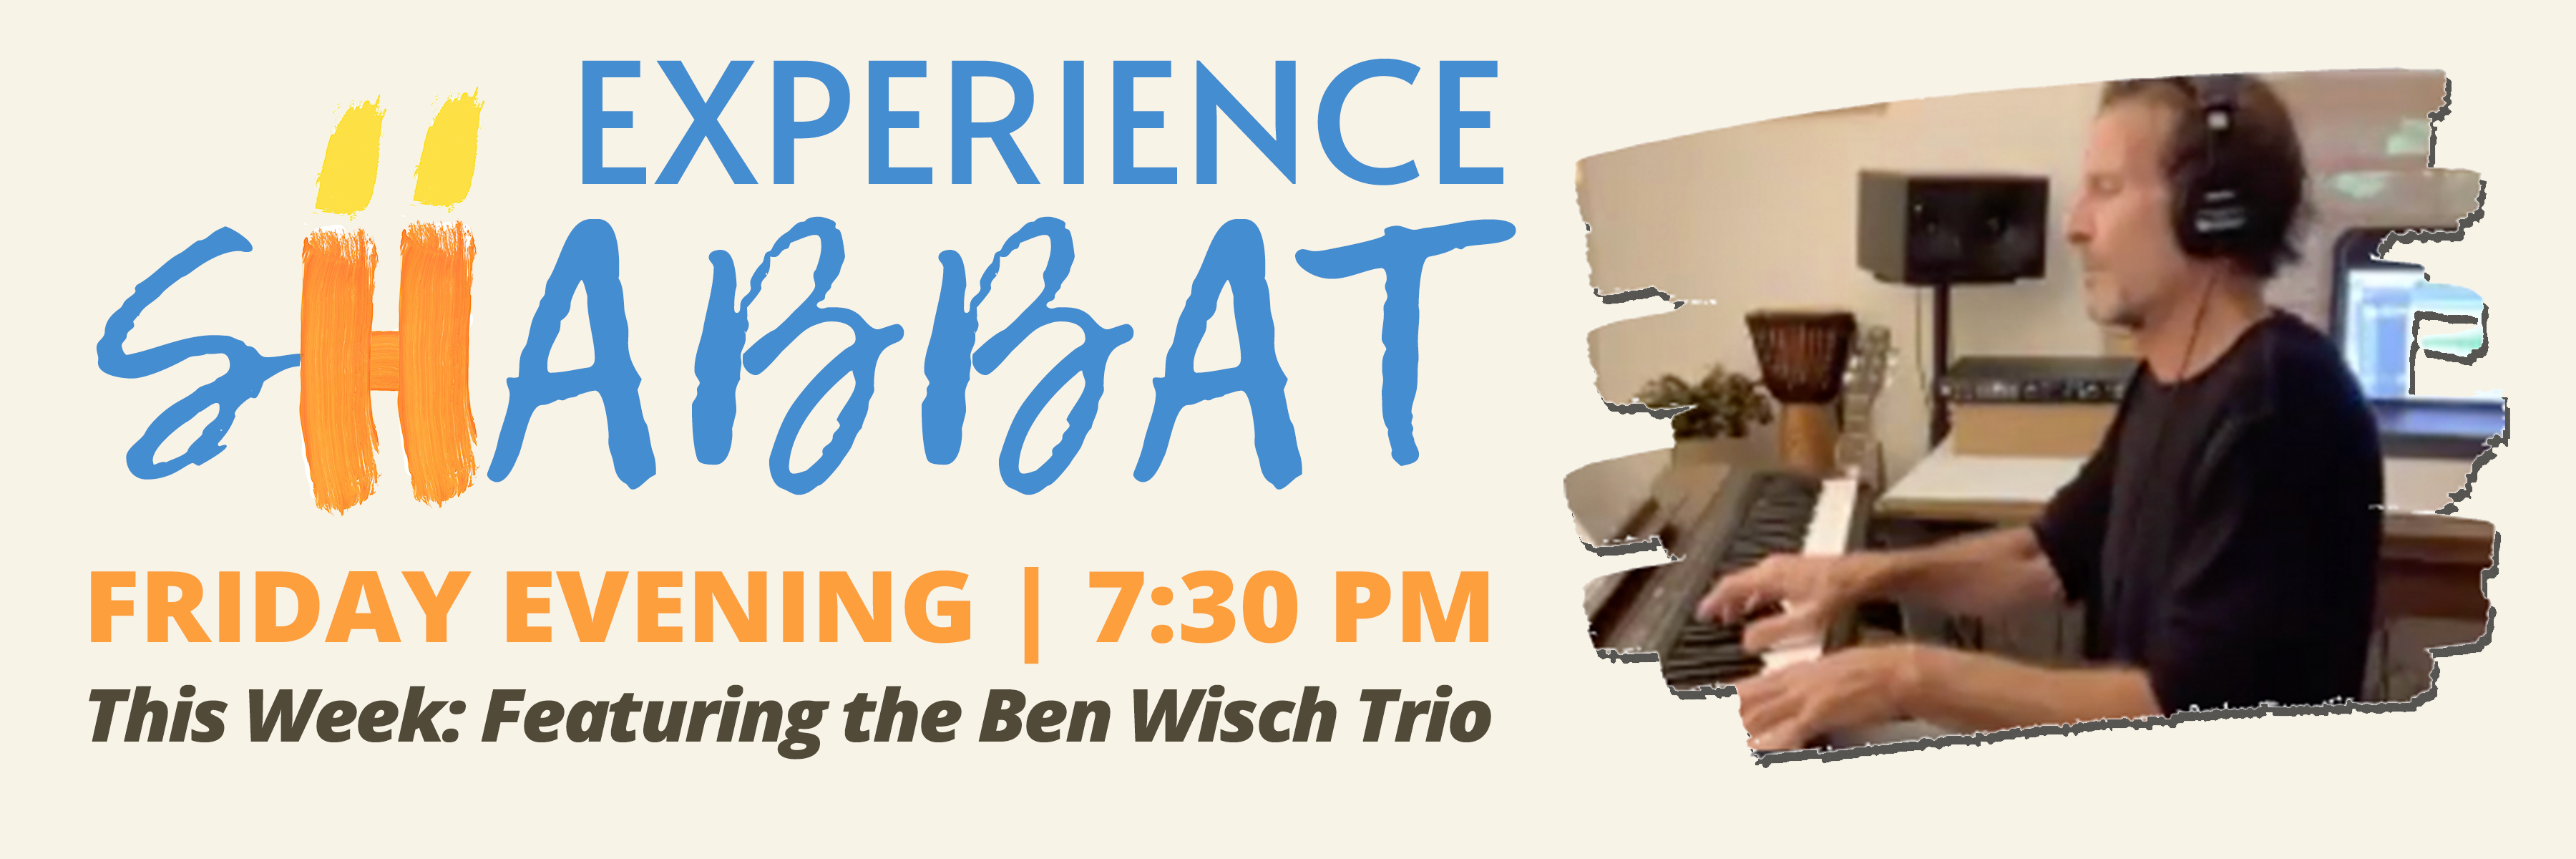 """<a href=""""https://www.barnerttemple.org/event/shabbat-worship-october-22-2021.html""""                                     target=""""_blank"""">                                                                 <span class=""""slider_title"""">                                     Friday, October 22, at 7 p.m.                                </span>                                                                 </a>                                                                                                                                                                                       <span class=""""slider_description"""">Ben Wisch, Marc Shulman, and Joe Bonadio add their jazz and soulful sounds to our Shabbat worship.  Join us in person or via LiveControl.  Click above for details.</span>"""